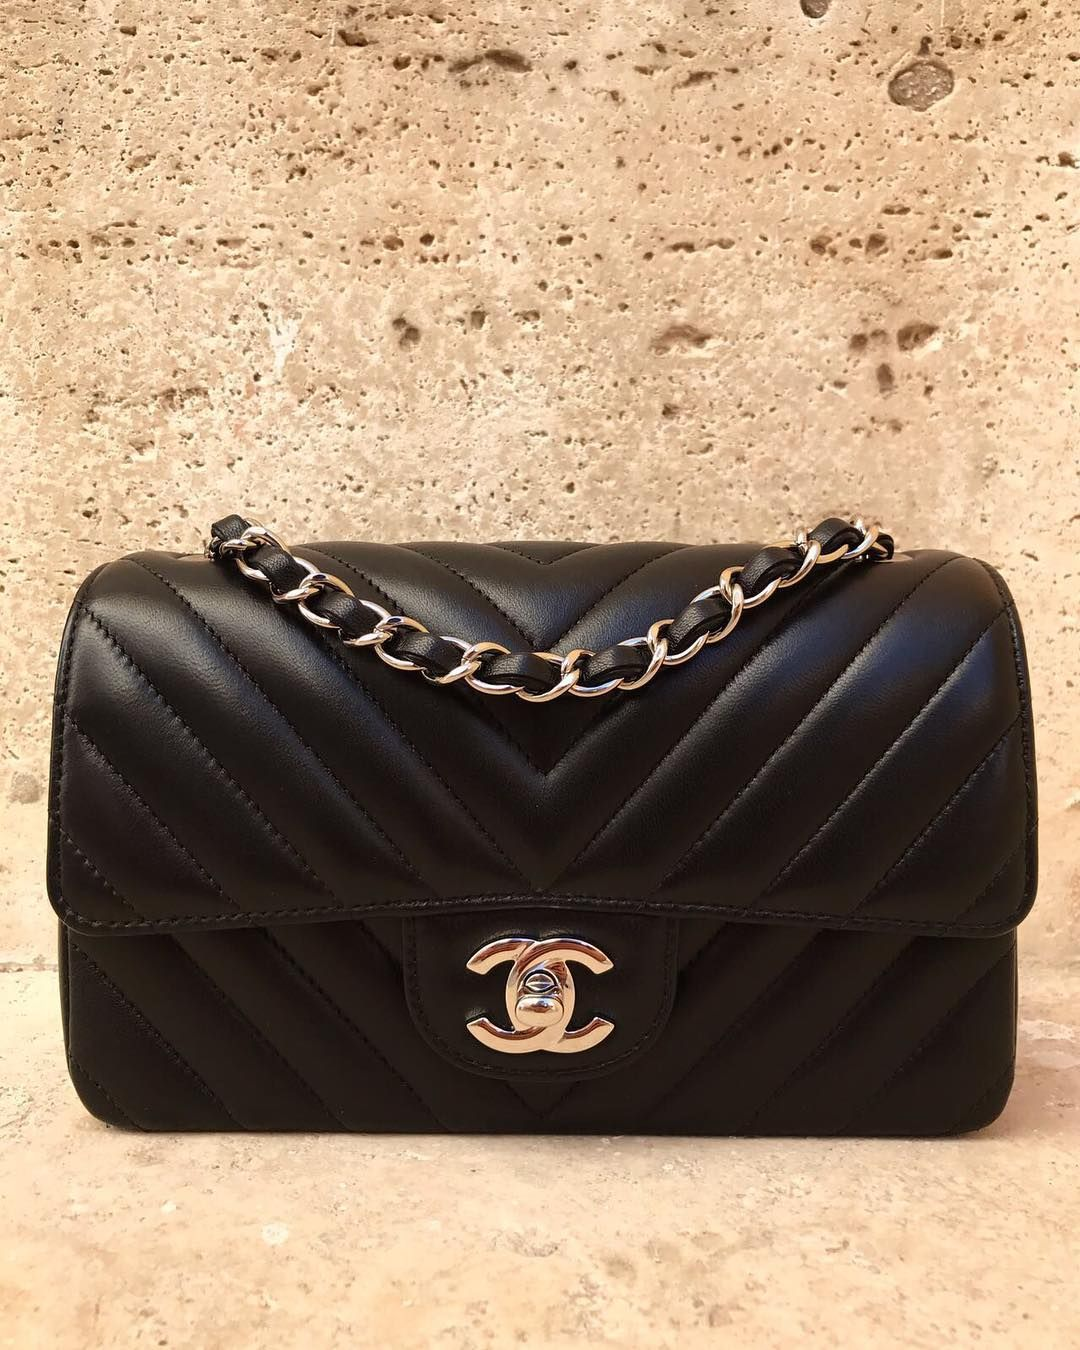 abf938b1b9f1 Chanel -- Mini Rectangle, Black Lambskin Chevron | fashion and style ...